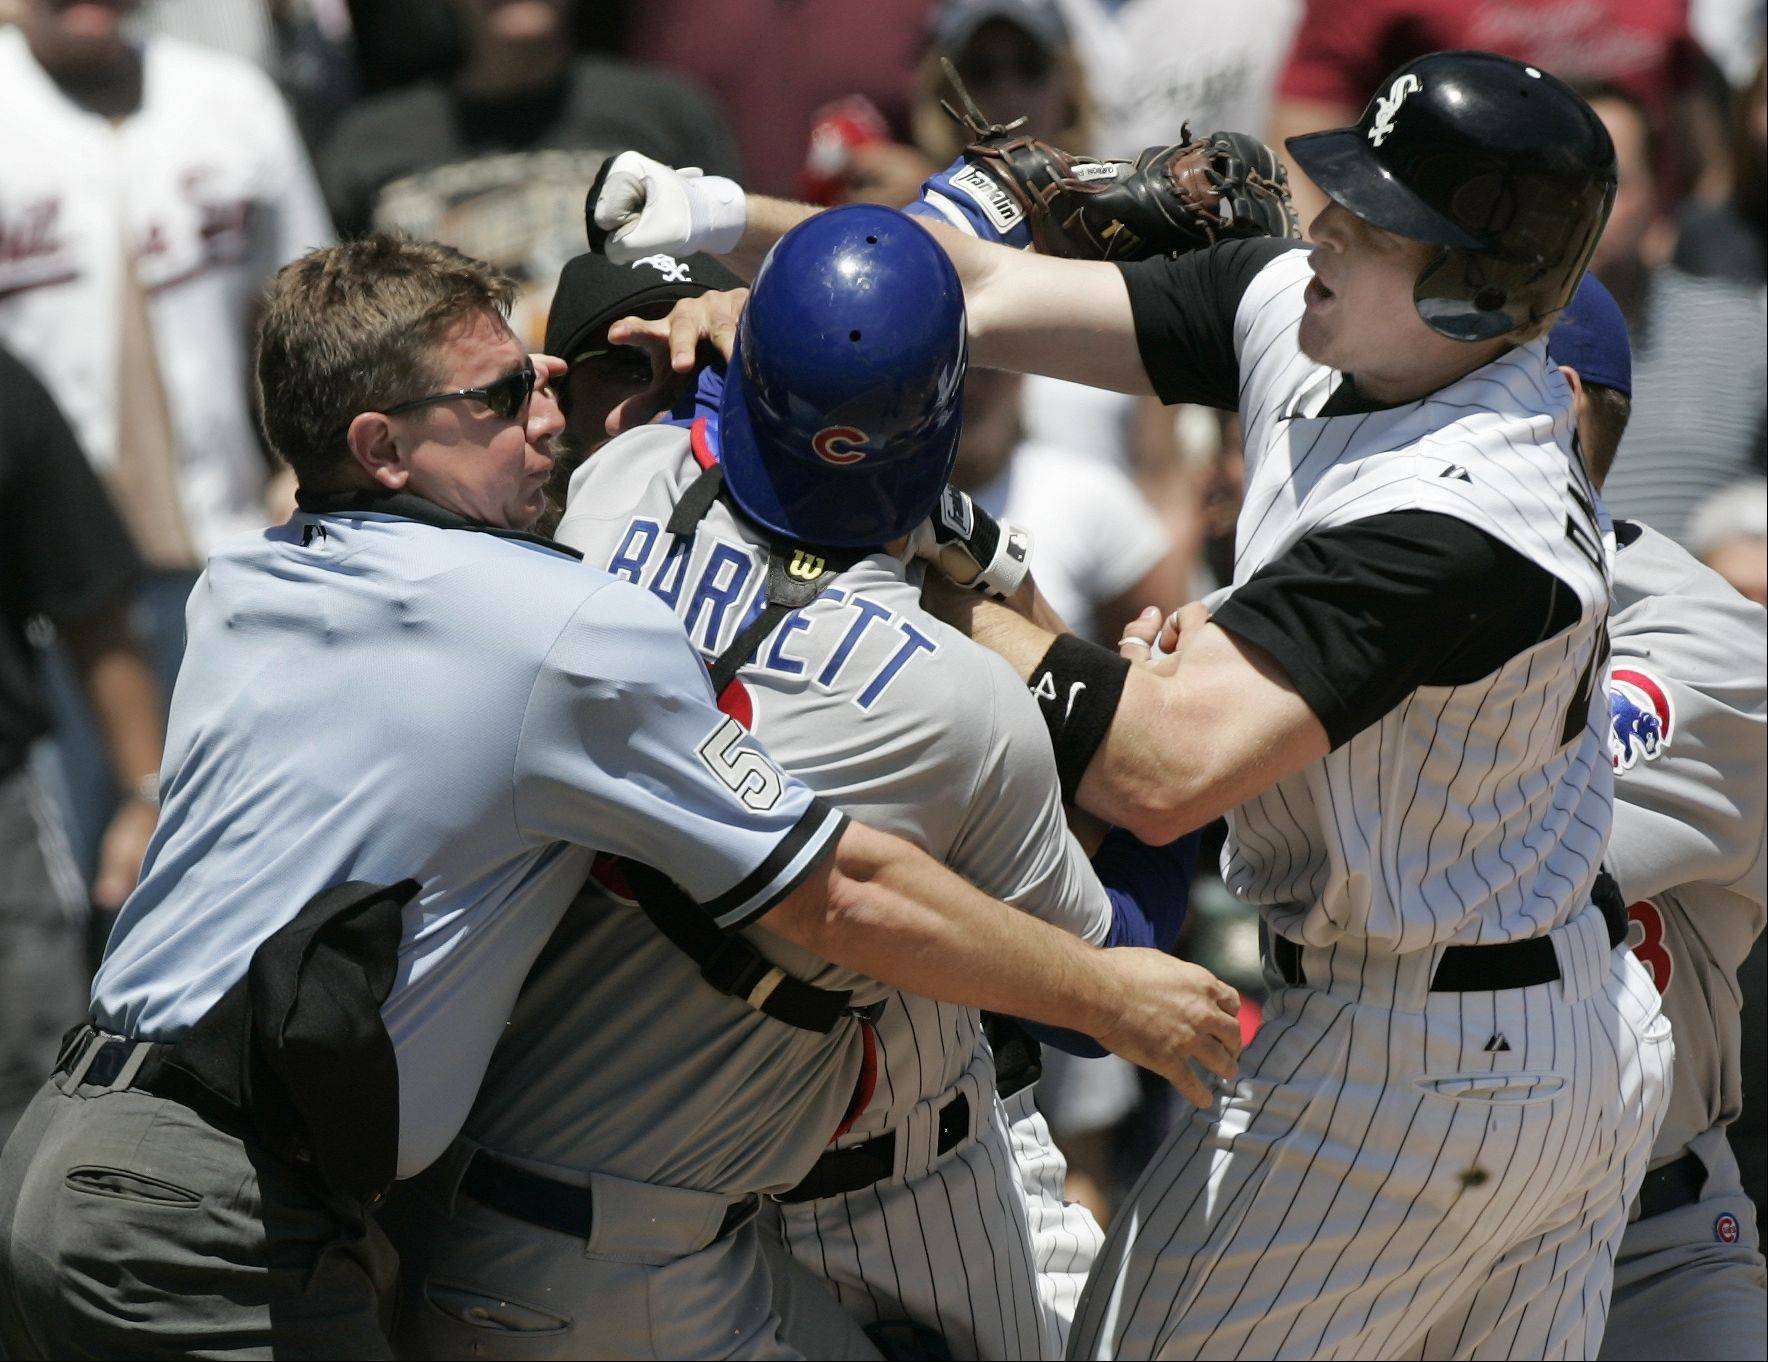 Sox Brian Anderson takes a swing at Cubs catcher Michael Barrett as Home Ump Greg Gibson tries to separate them. Game Two Chicago White Sox Vs Chicago Cubs at U.S. Cellular Field in Chicago. May 20, 2005.